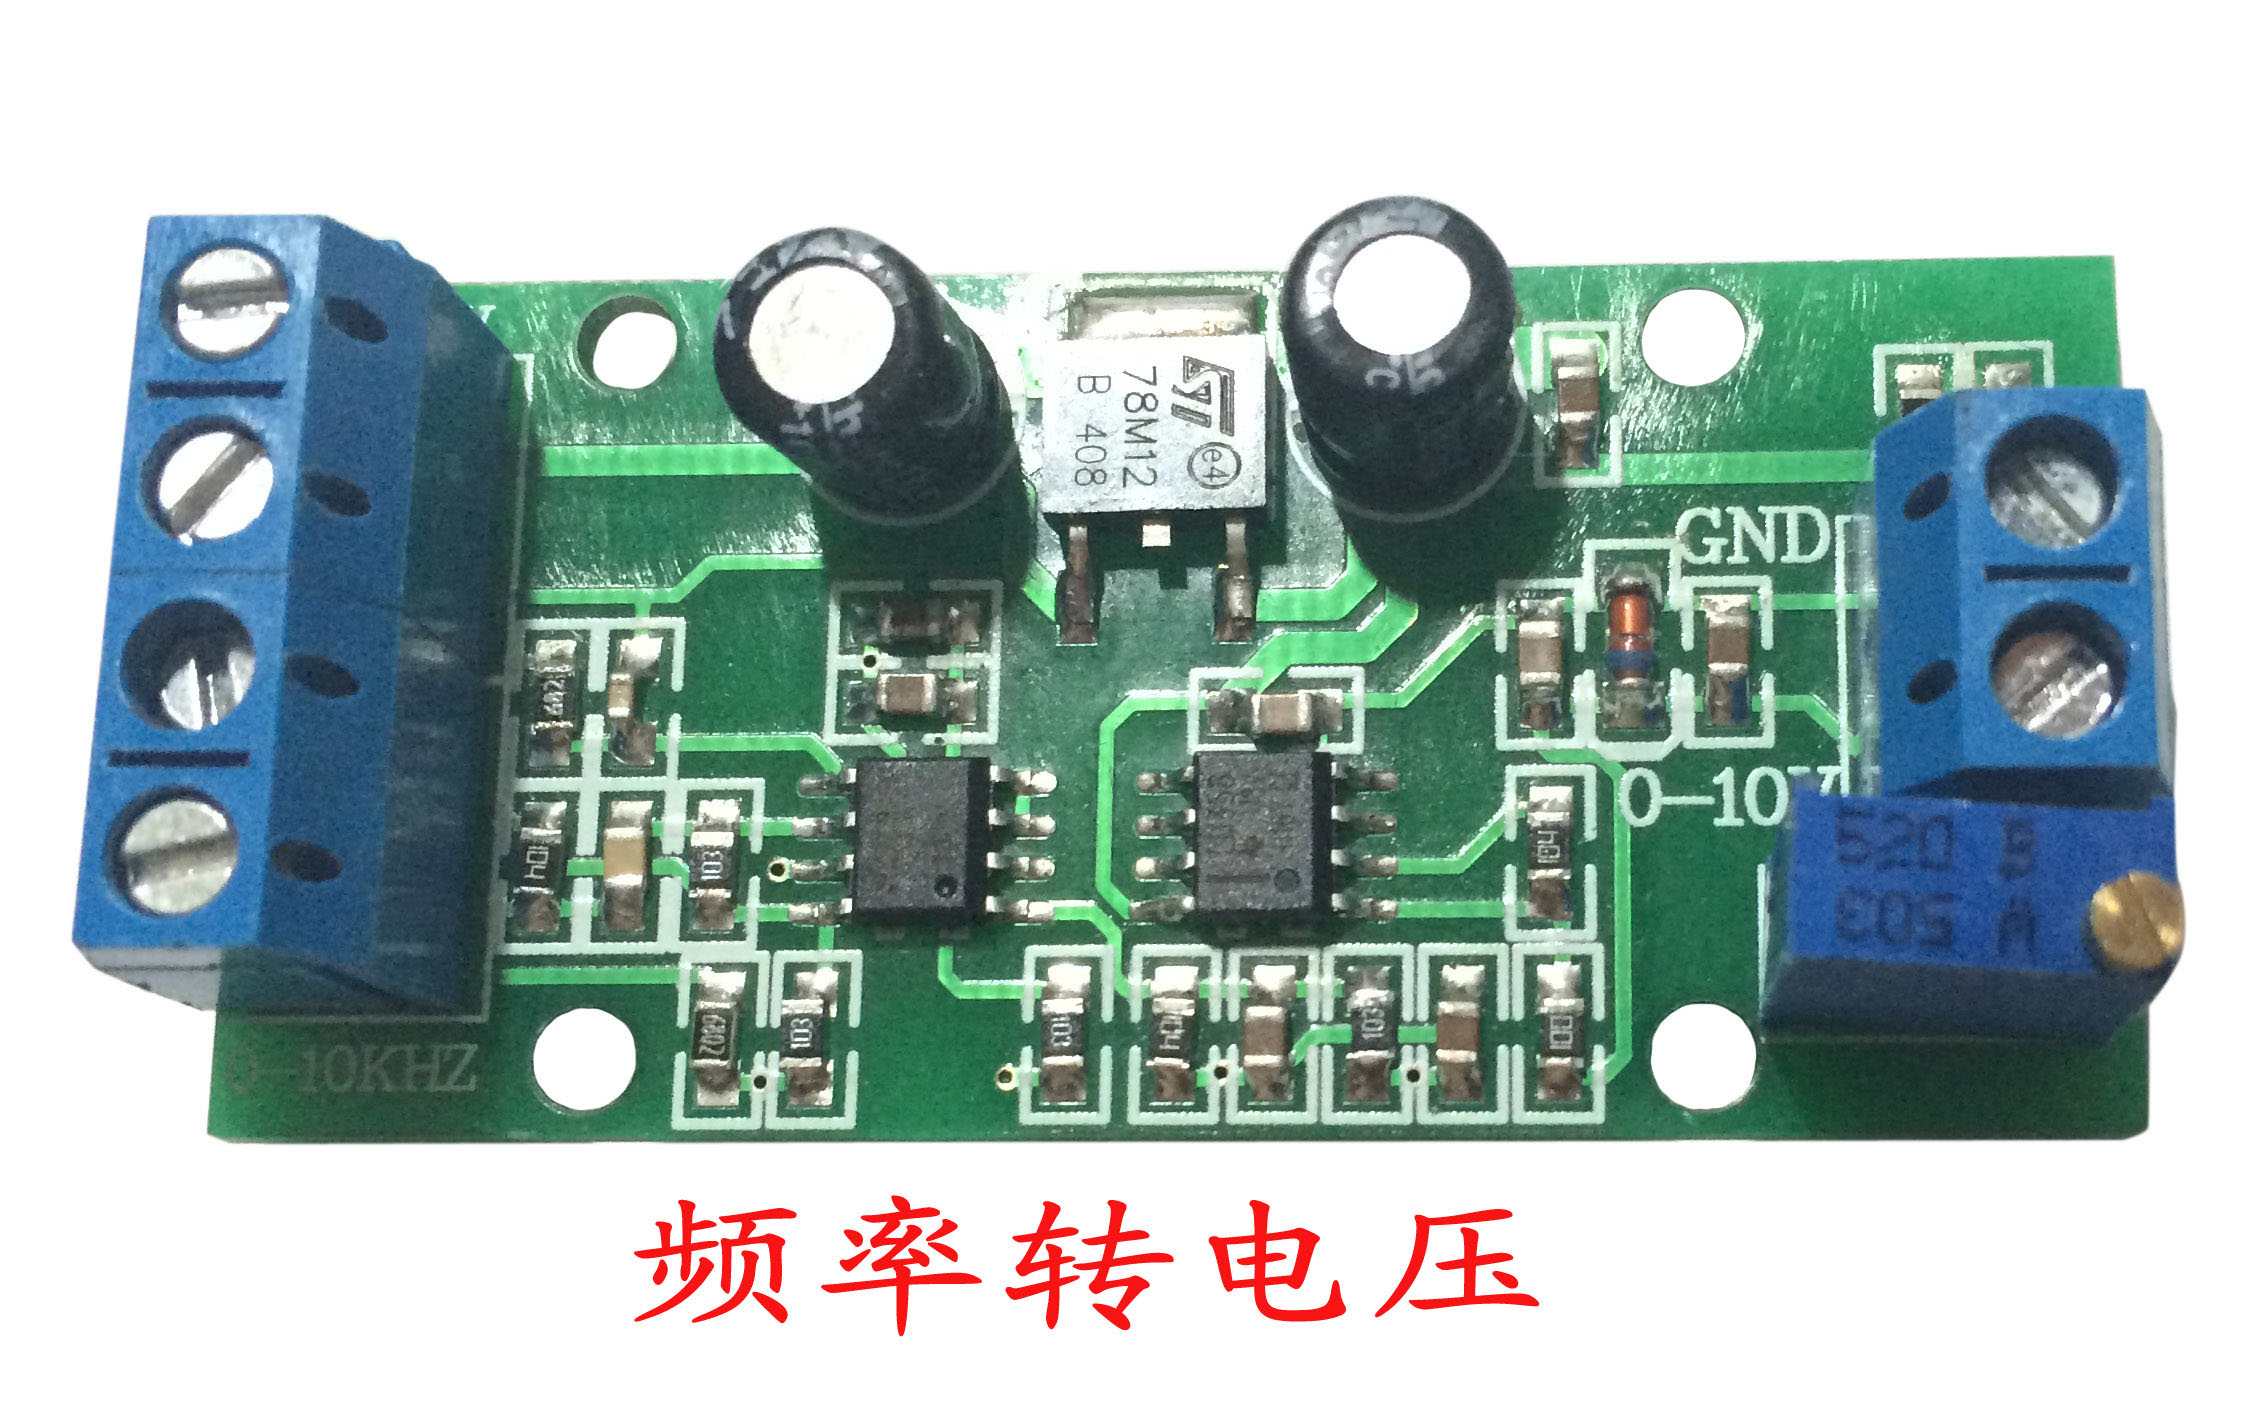 F/V conversion module frequency conversion to 0-10V/5V voltage digital to analog converter module 7 units ipm frequency conversion velocity modulation module mubw25 12a7 25a1200v